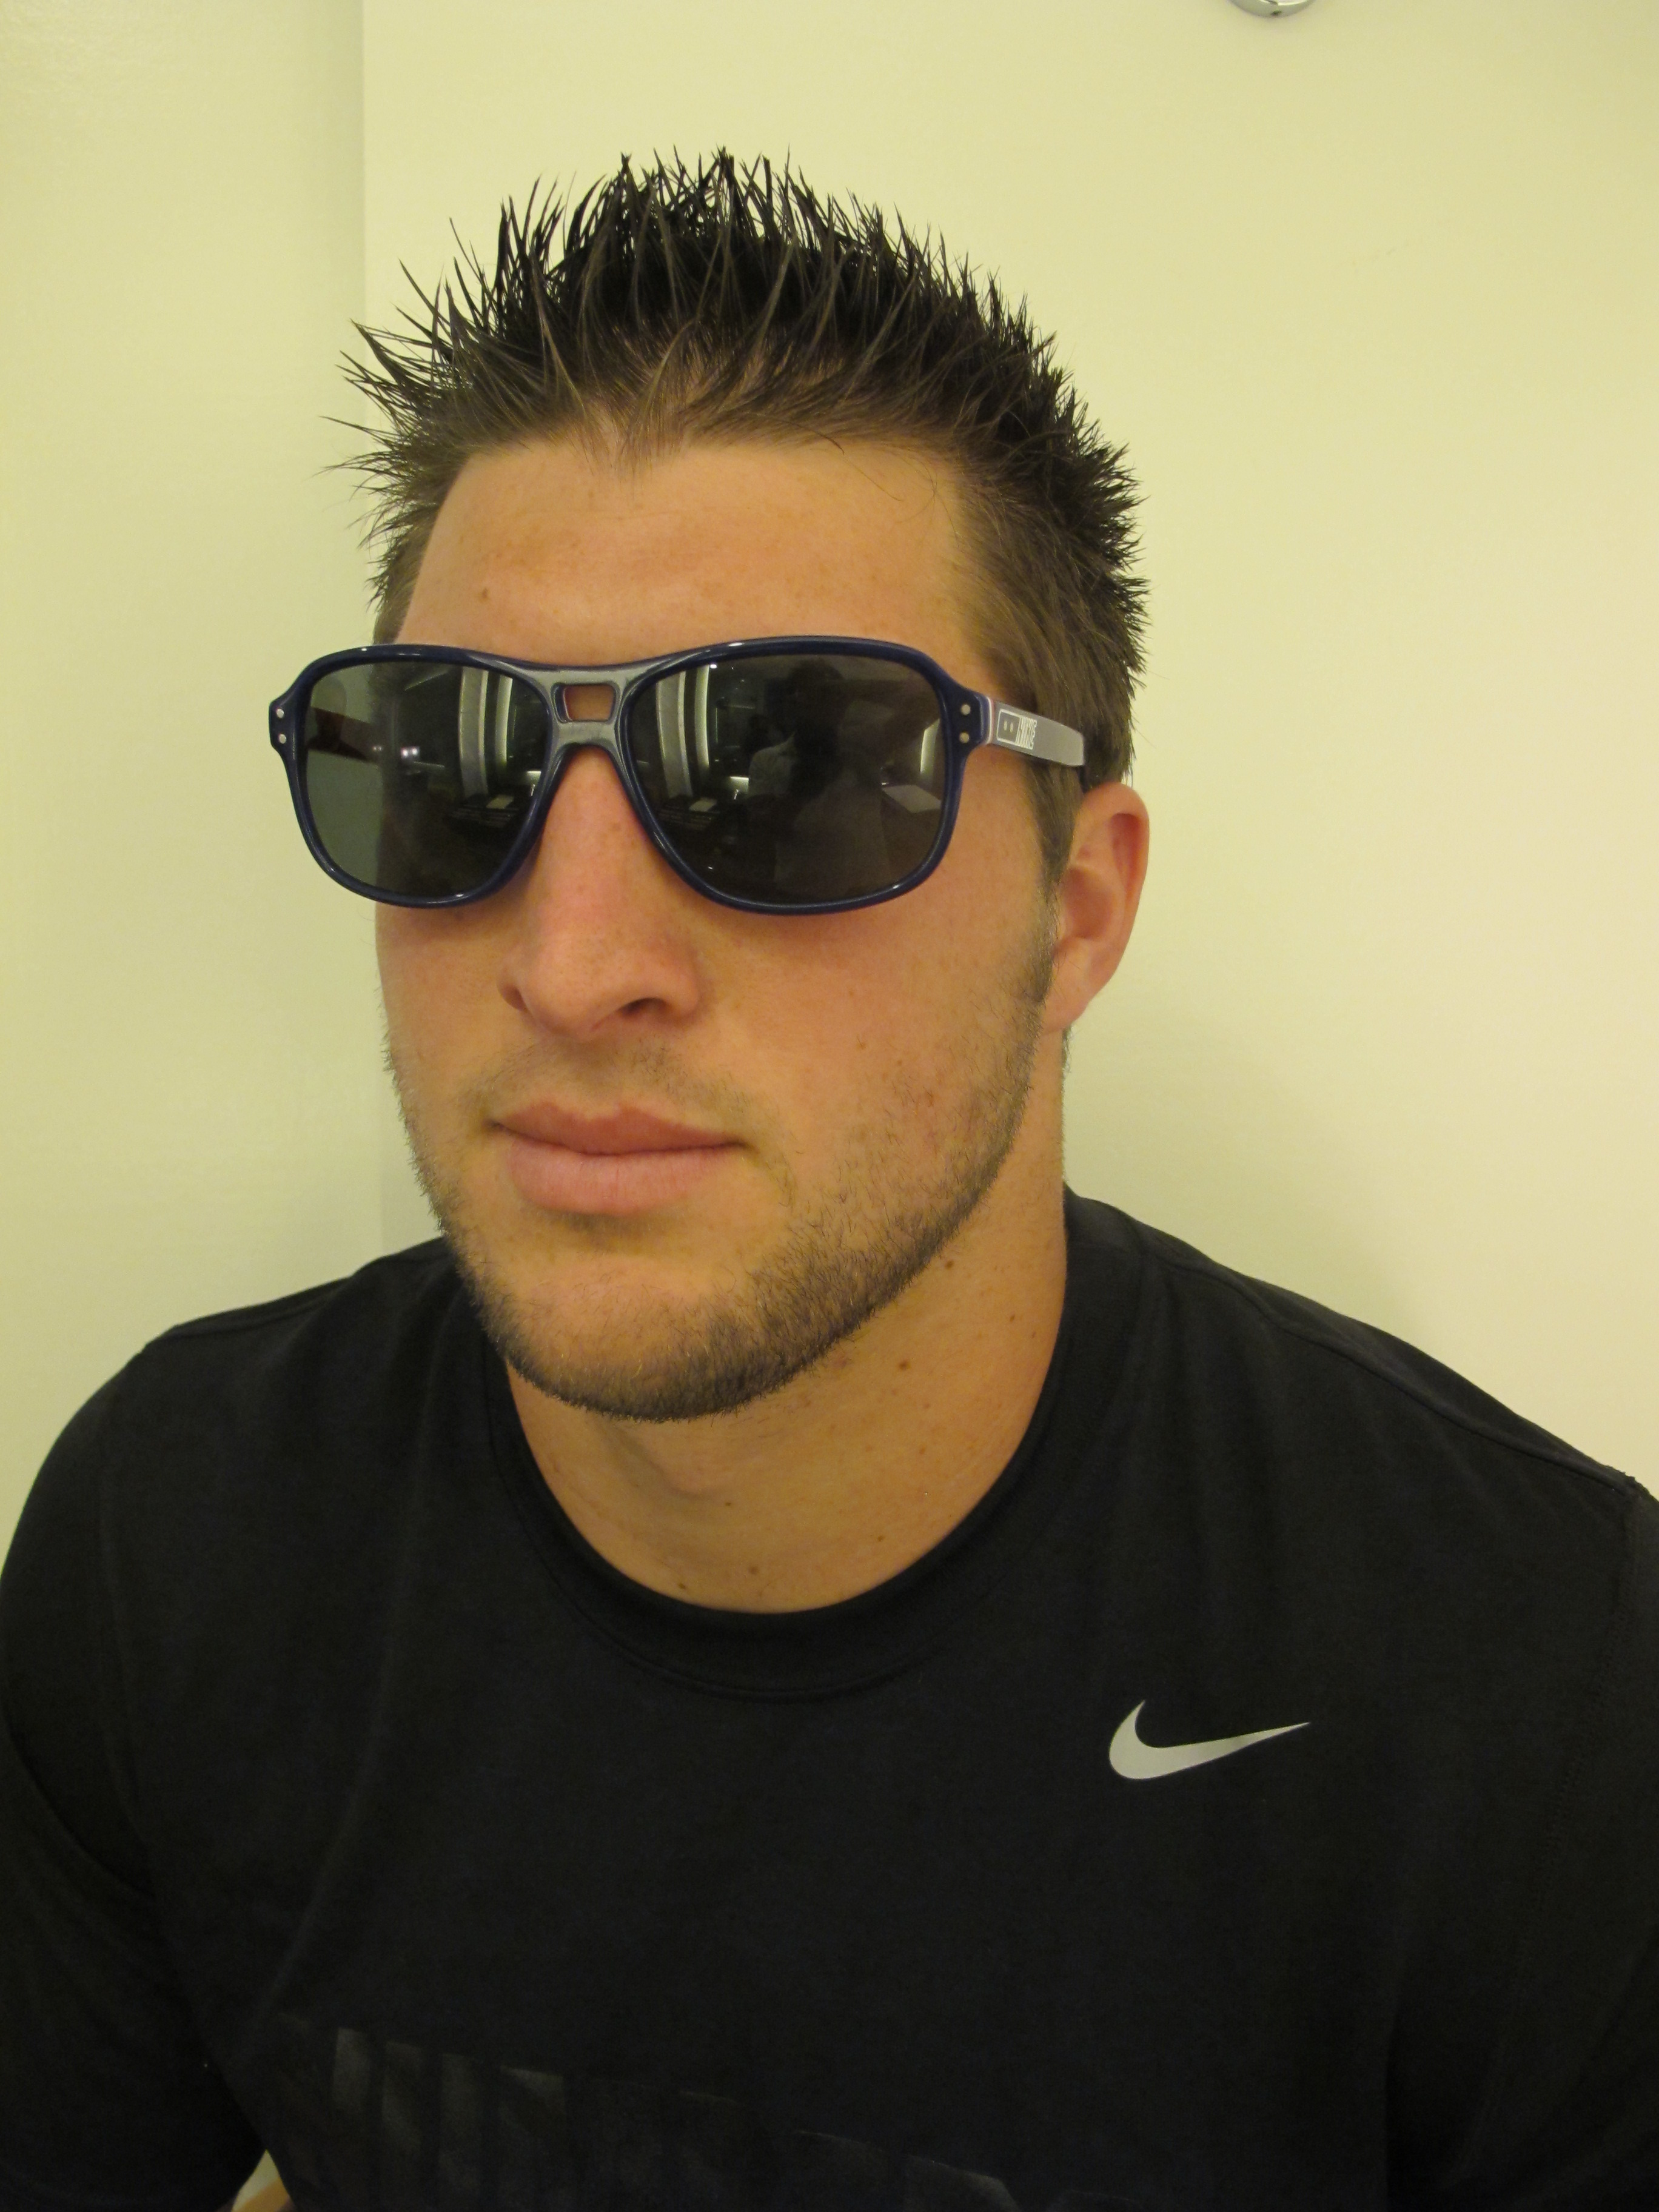 Do I Need Sports Glasses? - Free Article Directory - Submit